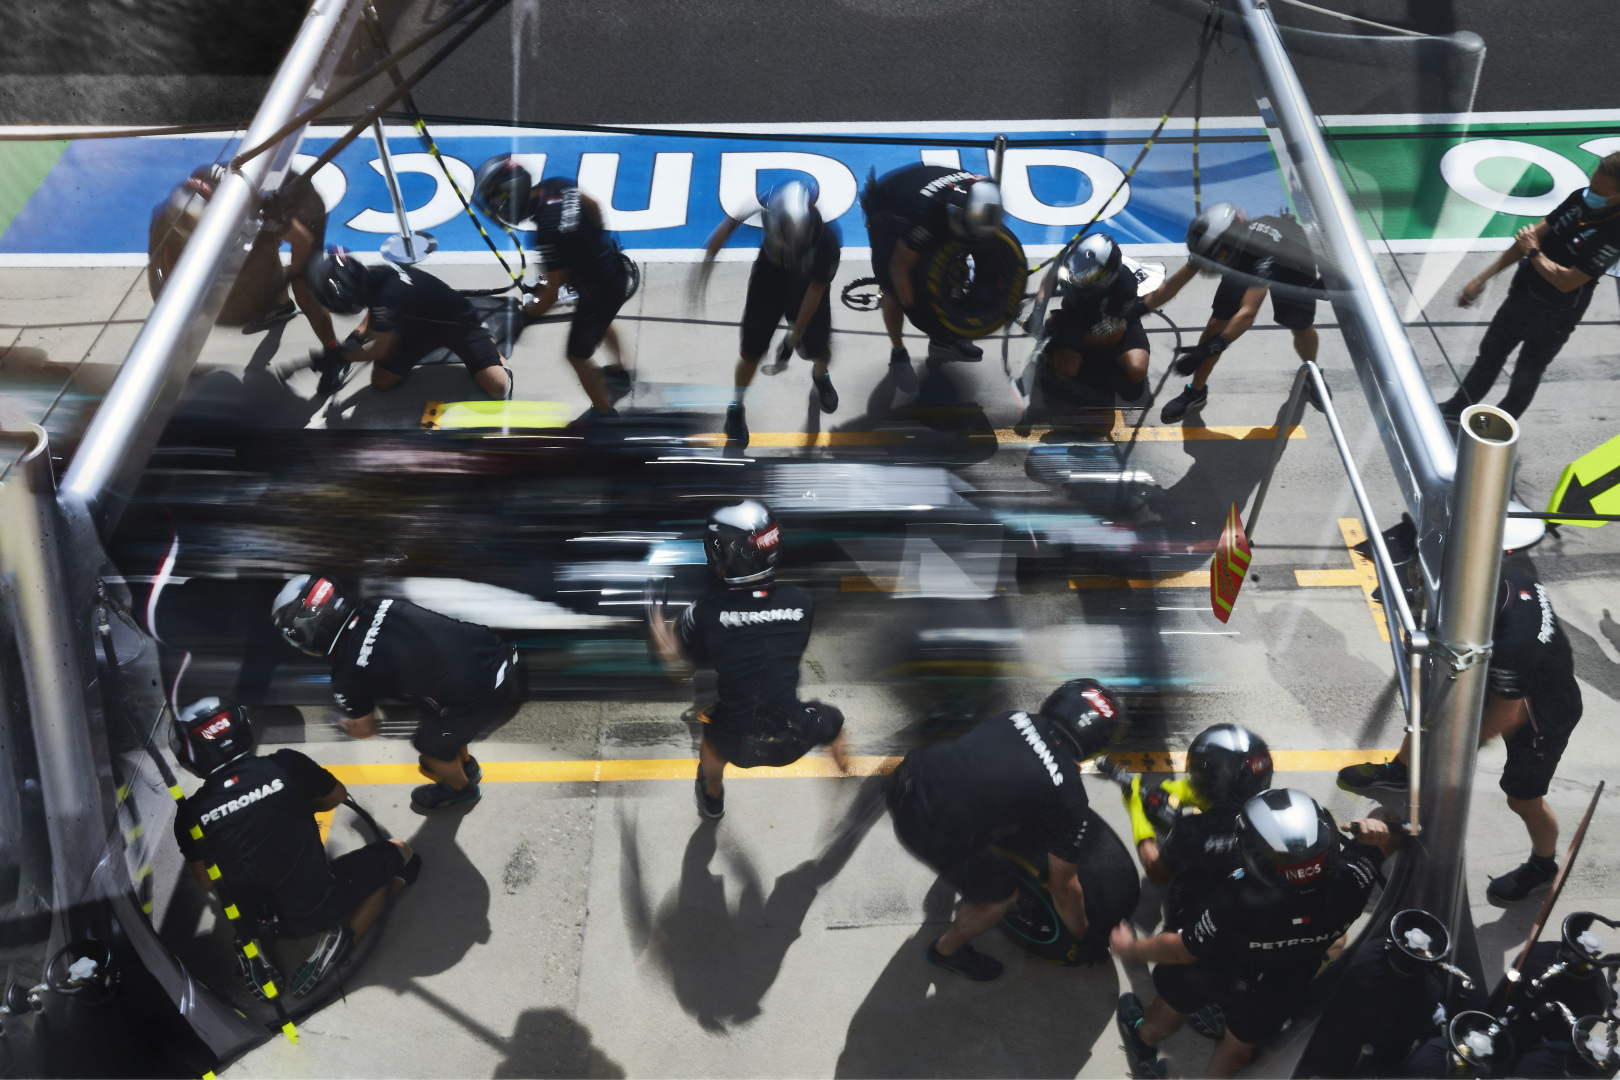 mercedes amg pit crew at work